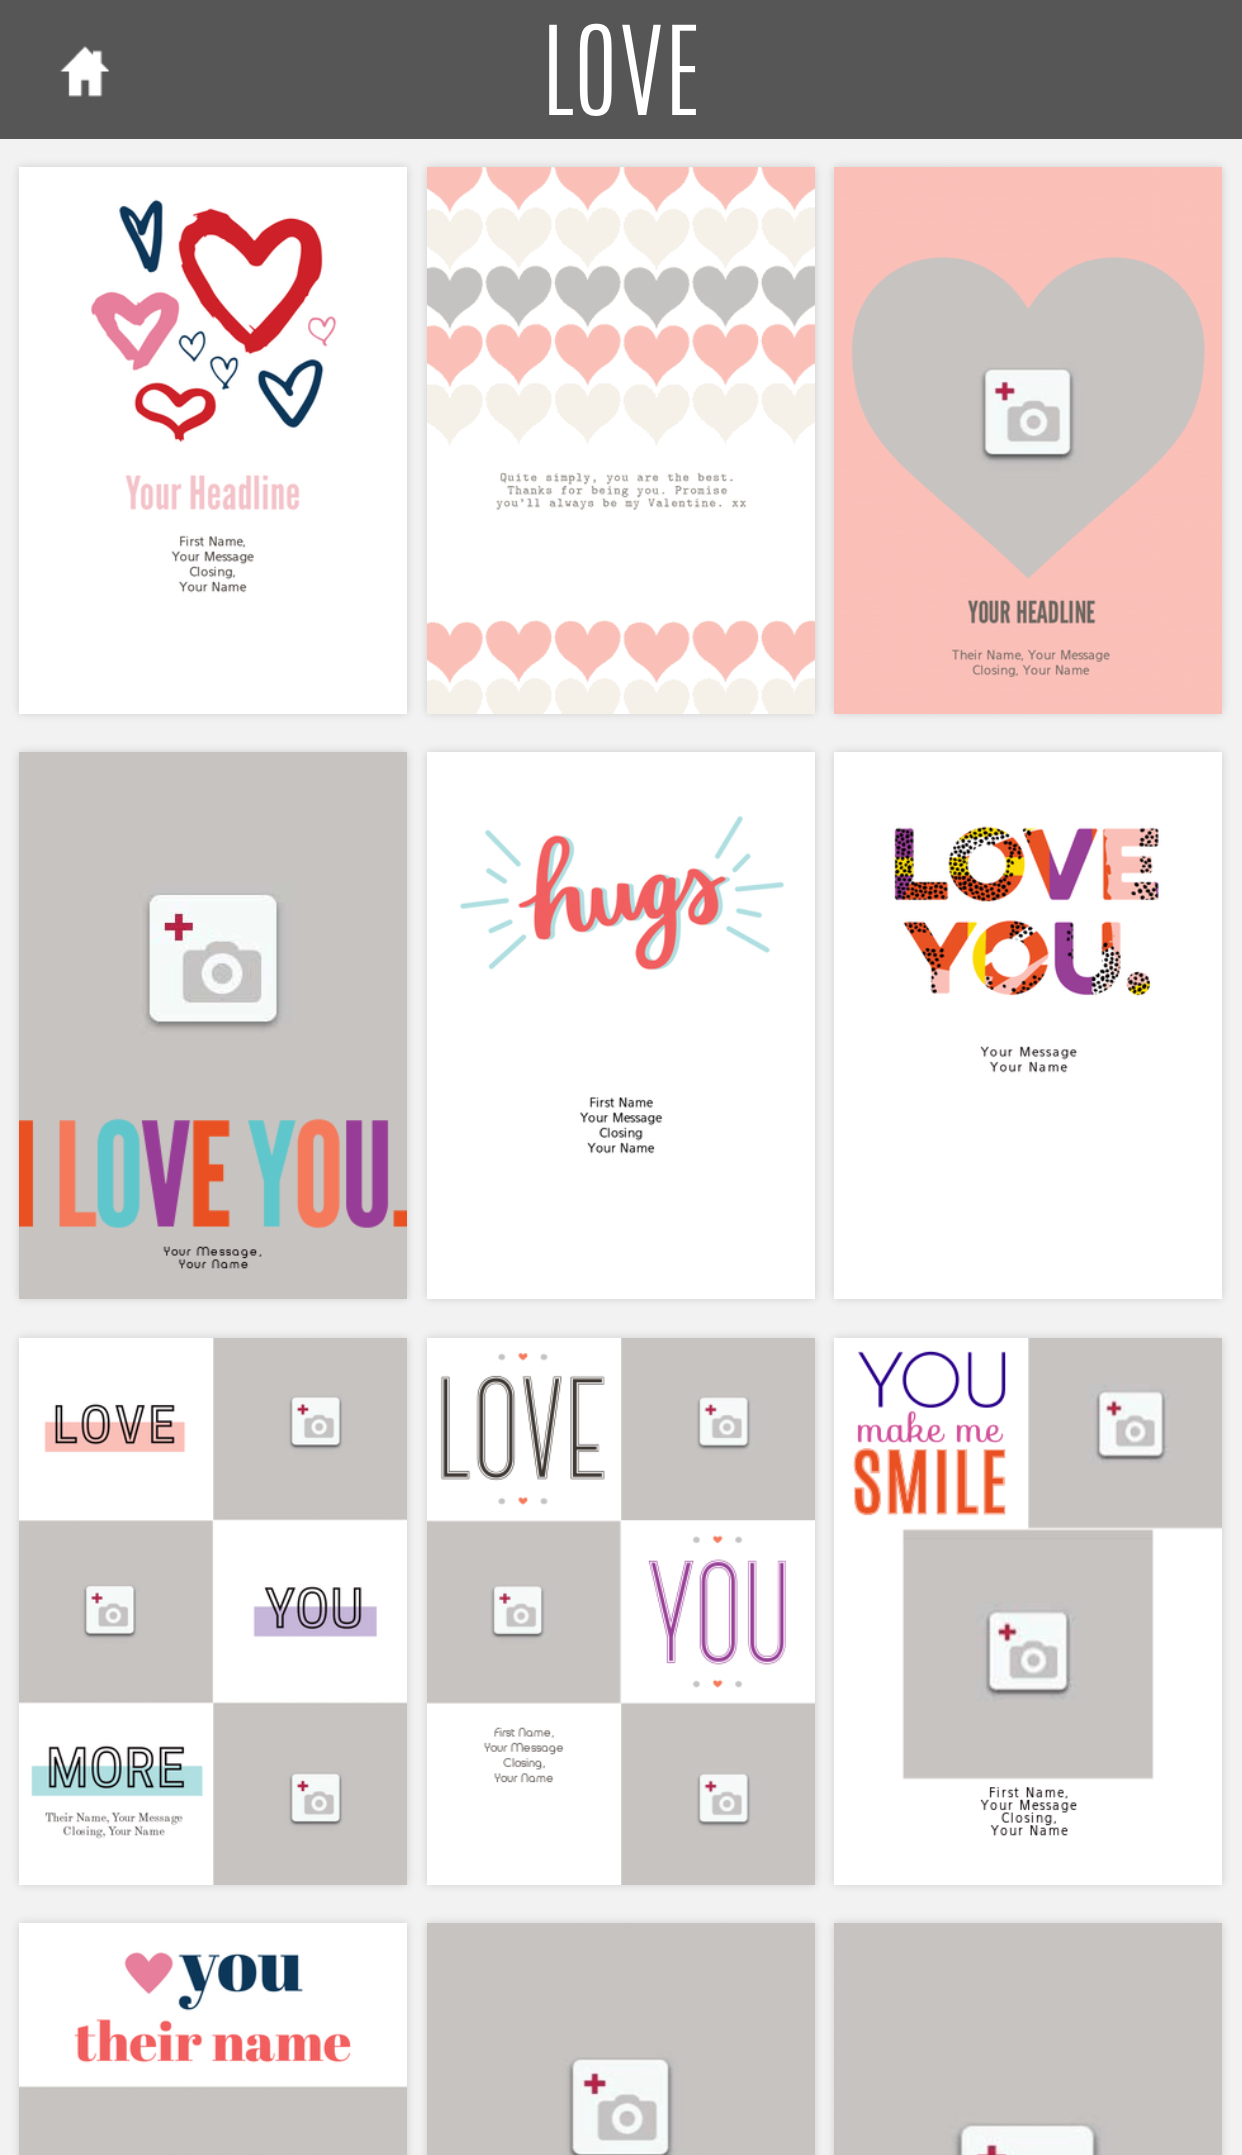 Free Valentine's eCards: Tons of templates from Red Stamp